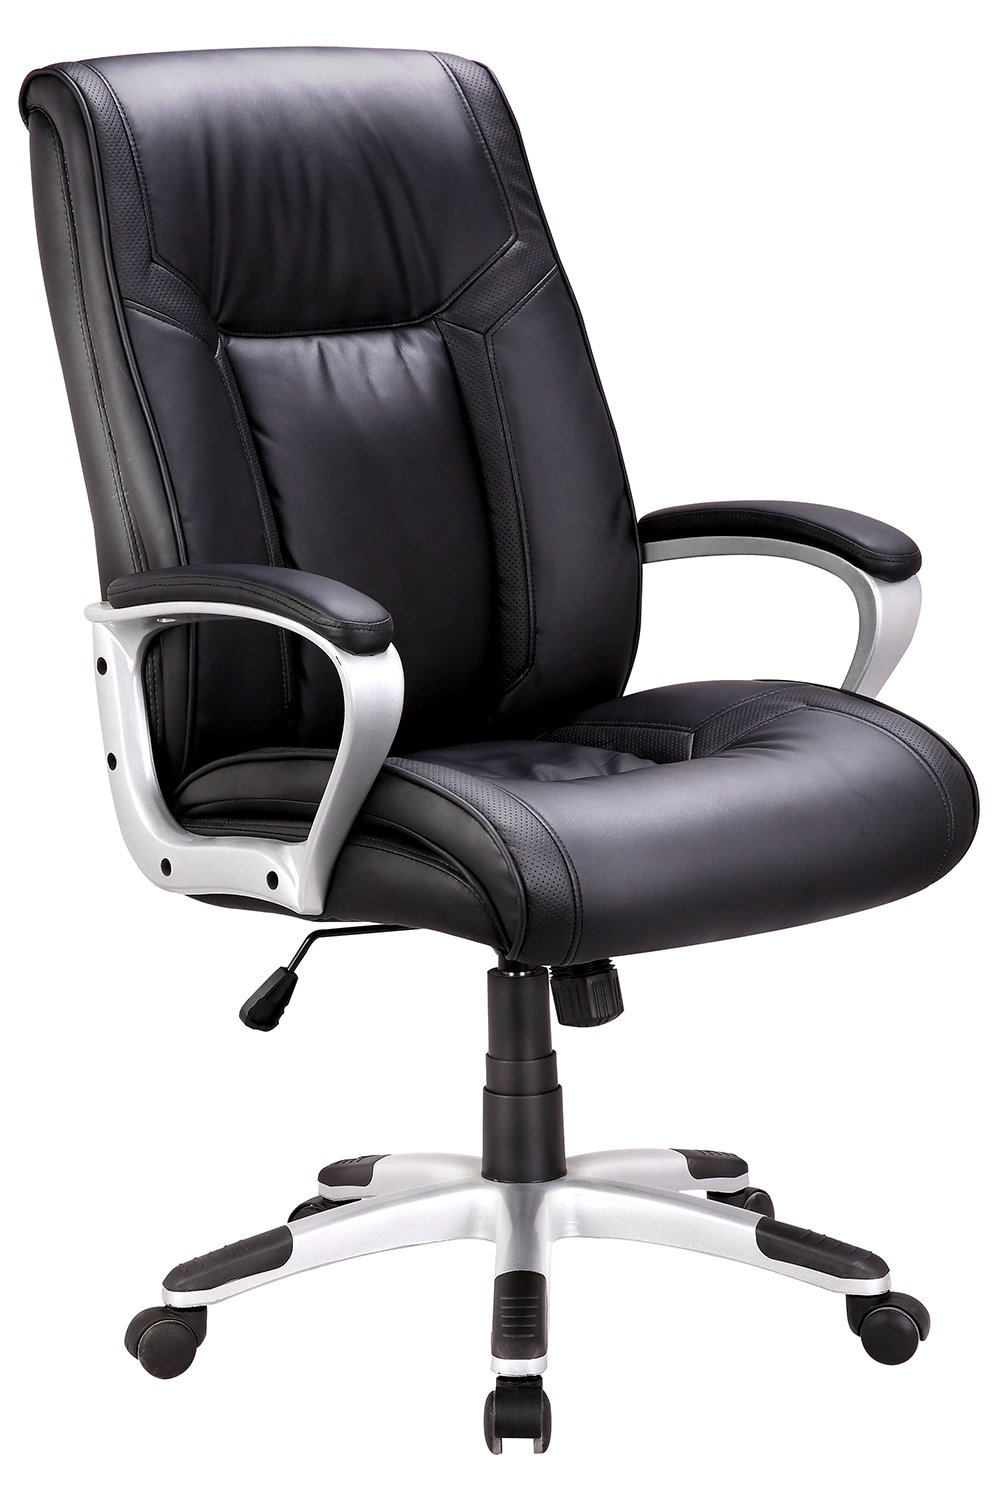 IntimaTe WM Heart Mid-Back Executive Office Chair, Faux Leather Computer Desk Chair, Ergonomic Design Adjustable Seat Height, Synchro Tilt Mechanism, 360 Degree Swivel, Black